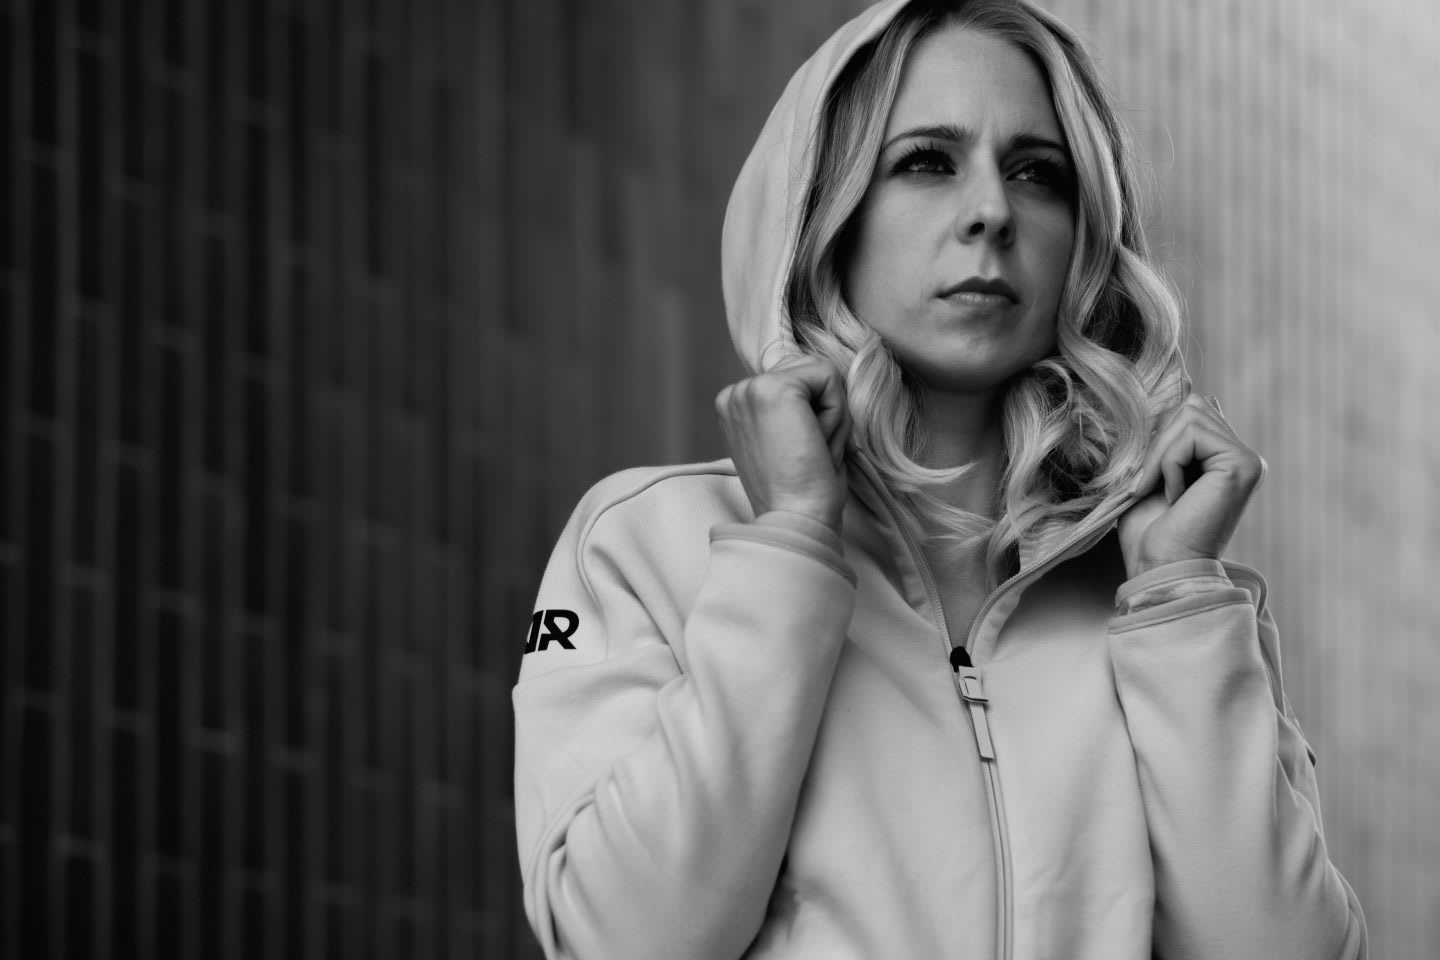 black and white picture of a woman looking concentrated and wearing an adidas Runners track top in front of a black background, Larissa Gerhard_adidas Runners_GamePlan A